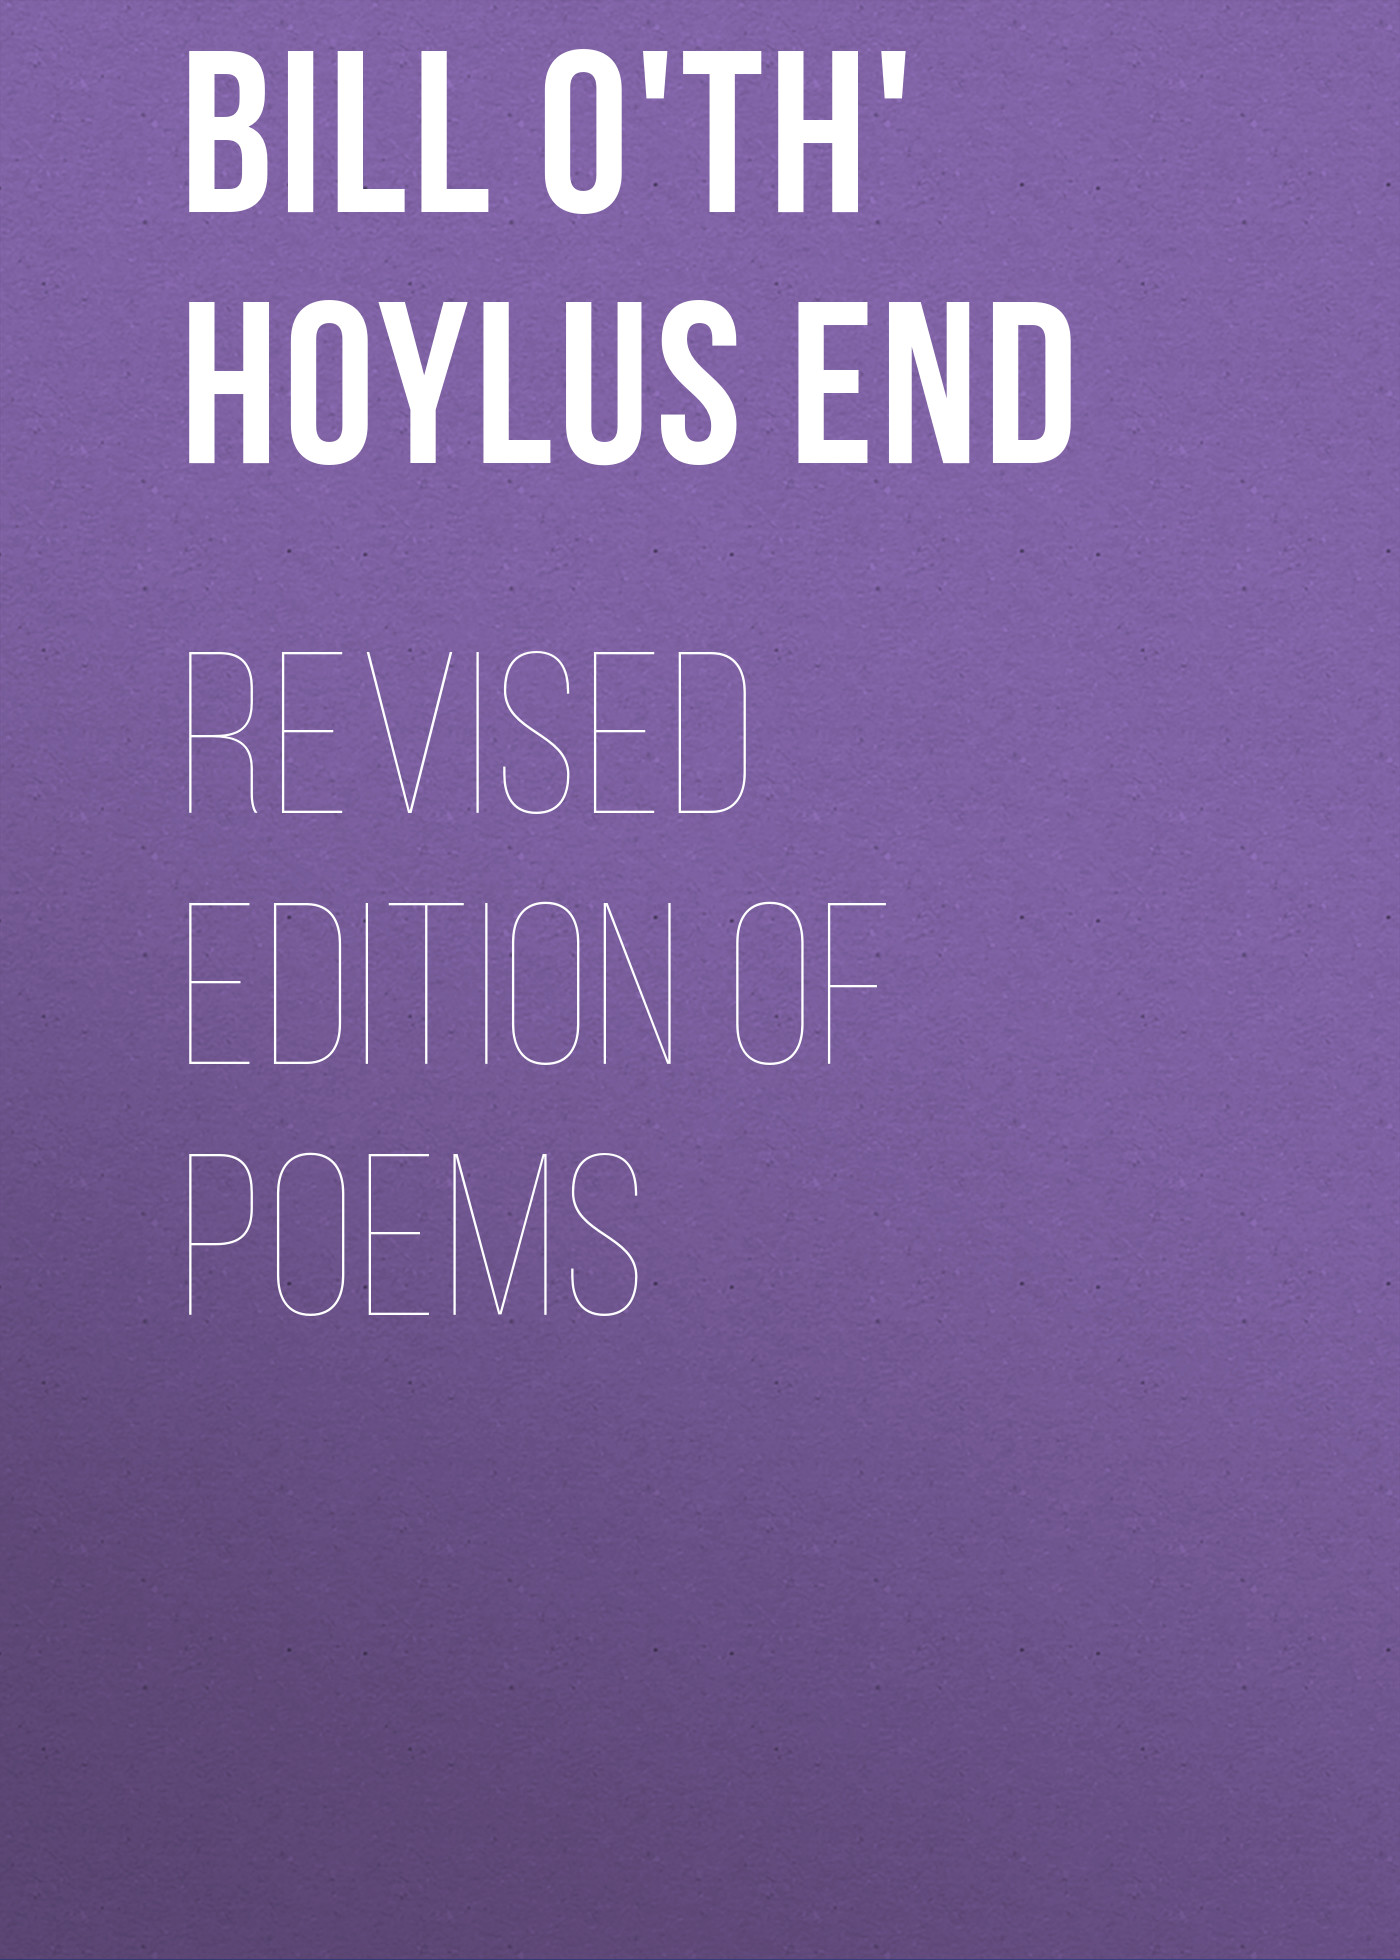 Bill o'th' Hoylus End Revised Edition of Poems random house webster s dictionary revised edition